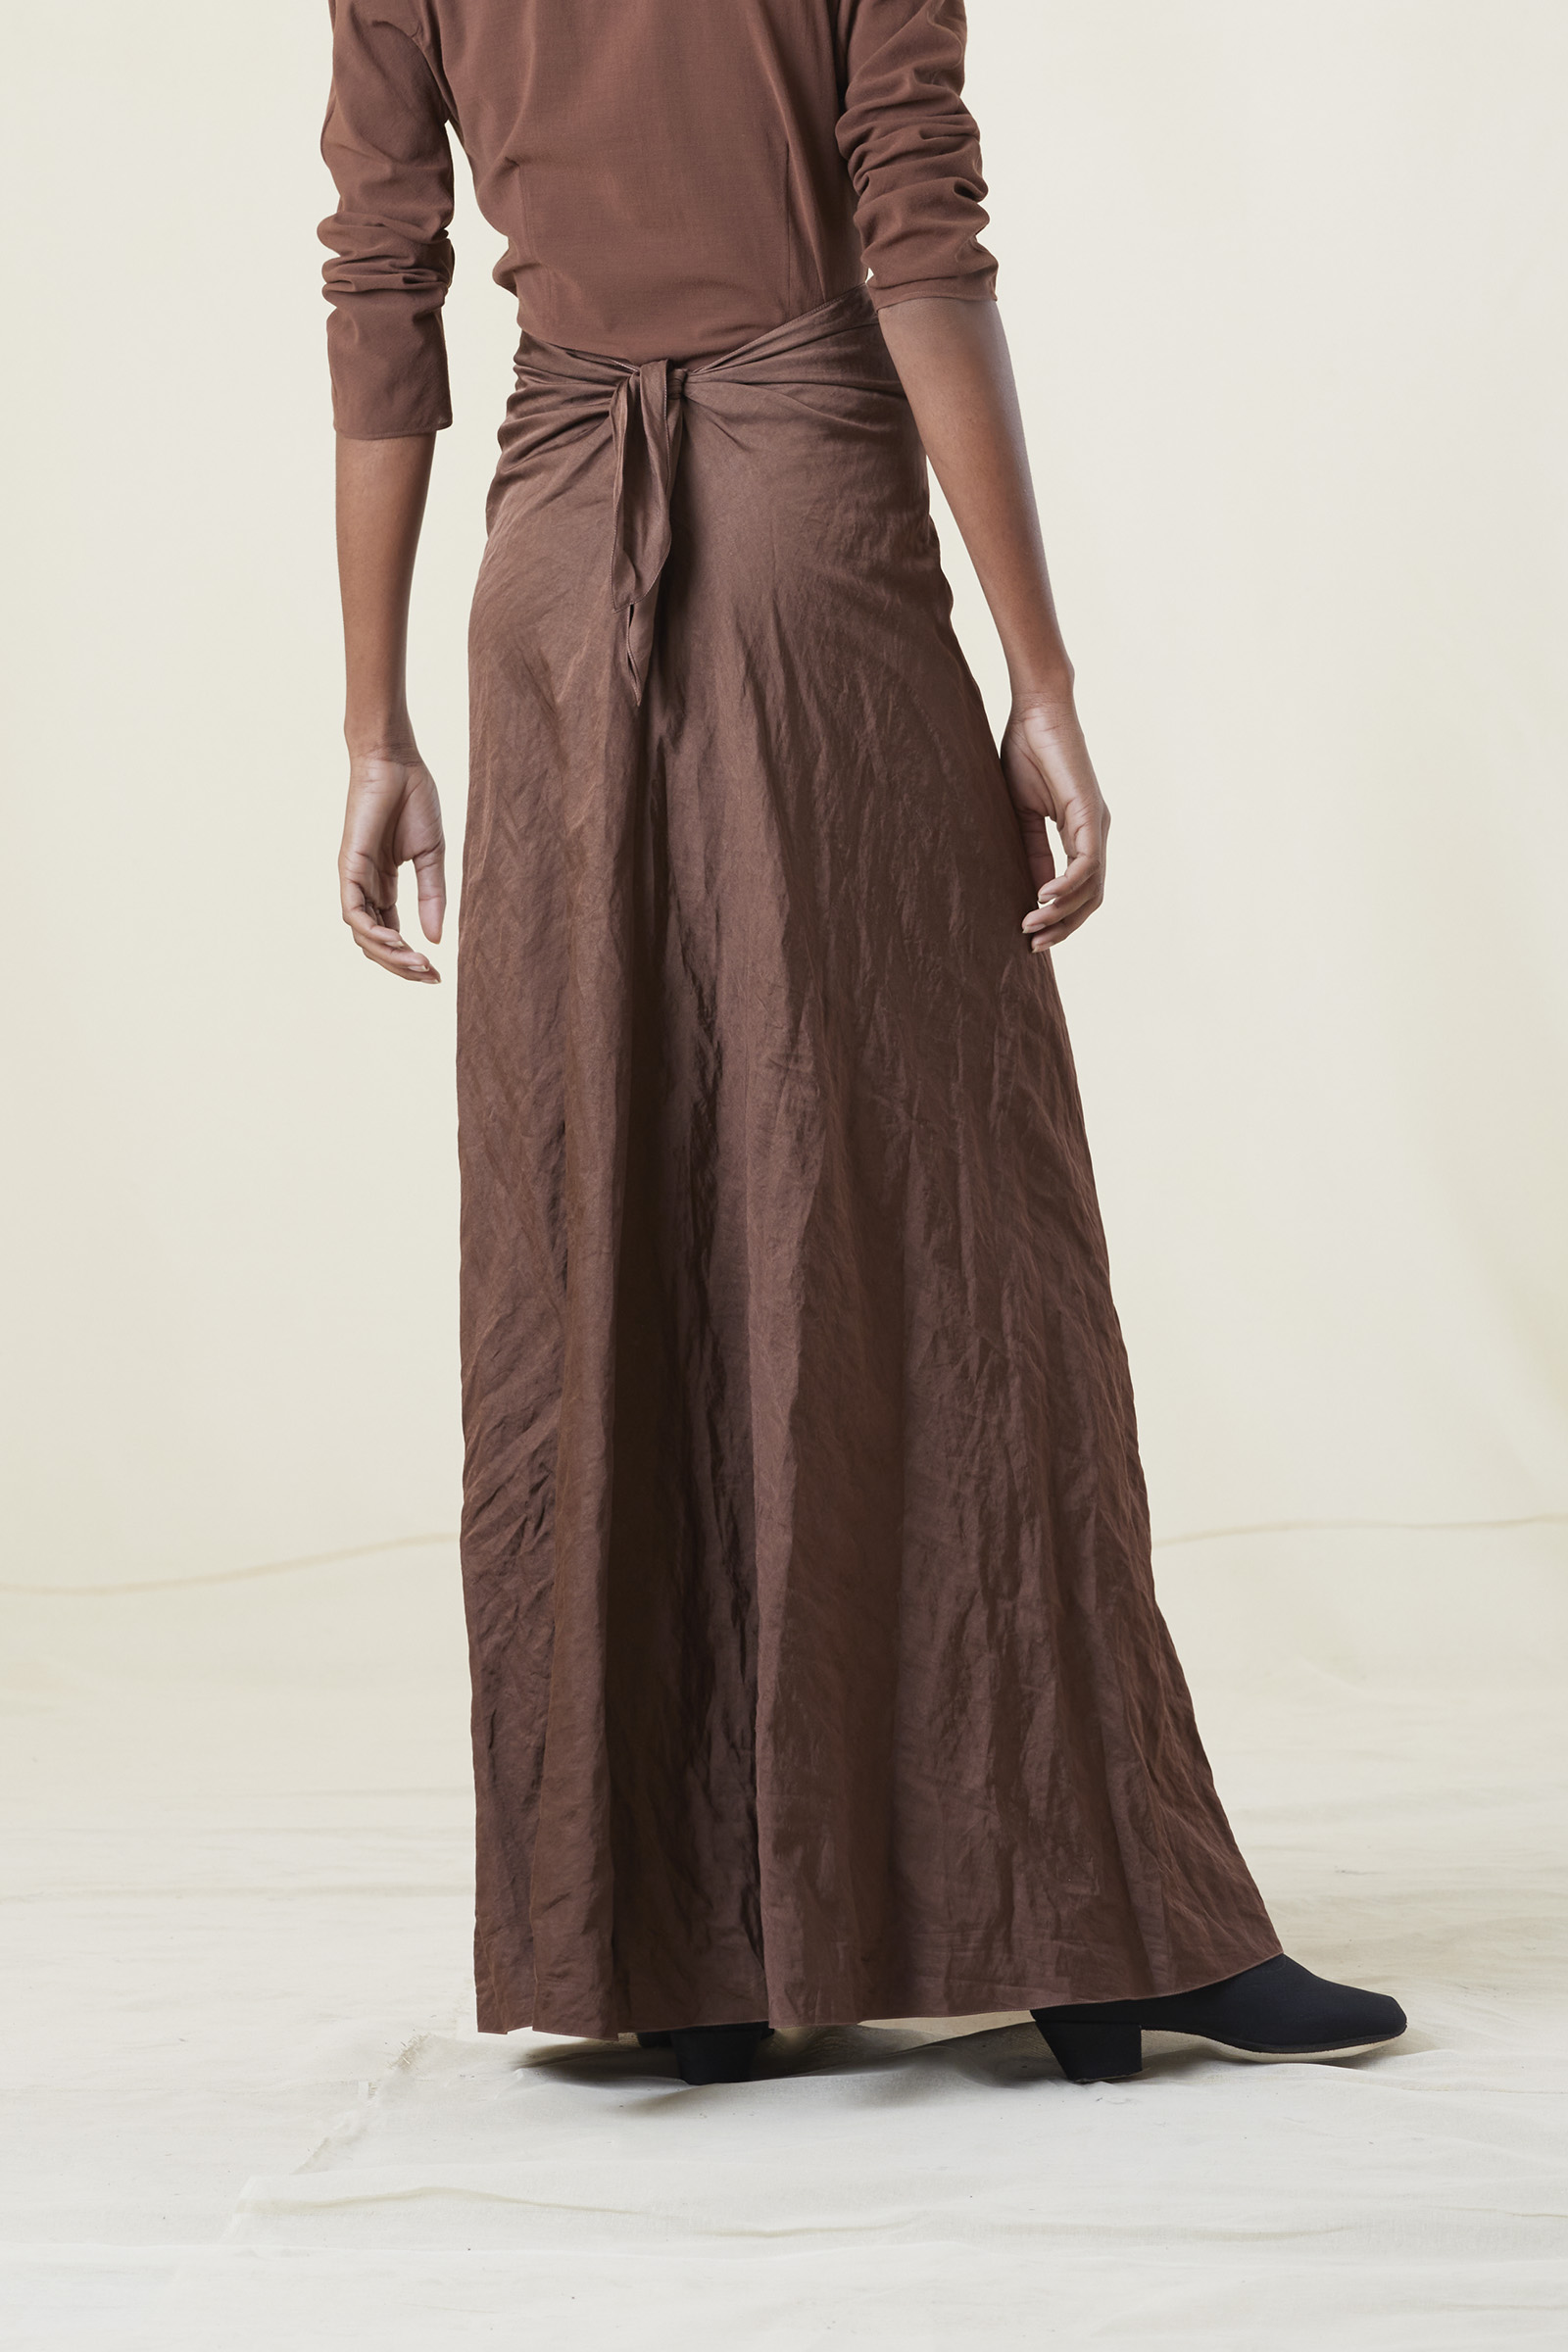 ZOCO, MAHOGANY SKIRT - Cortana